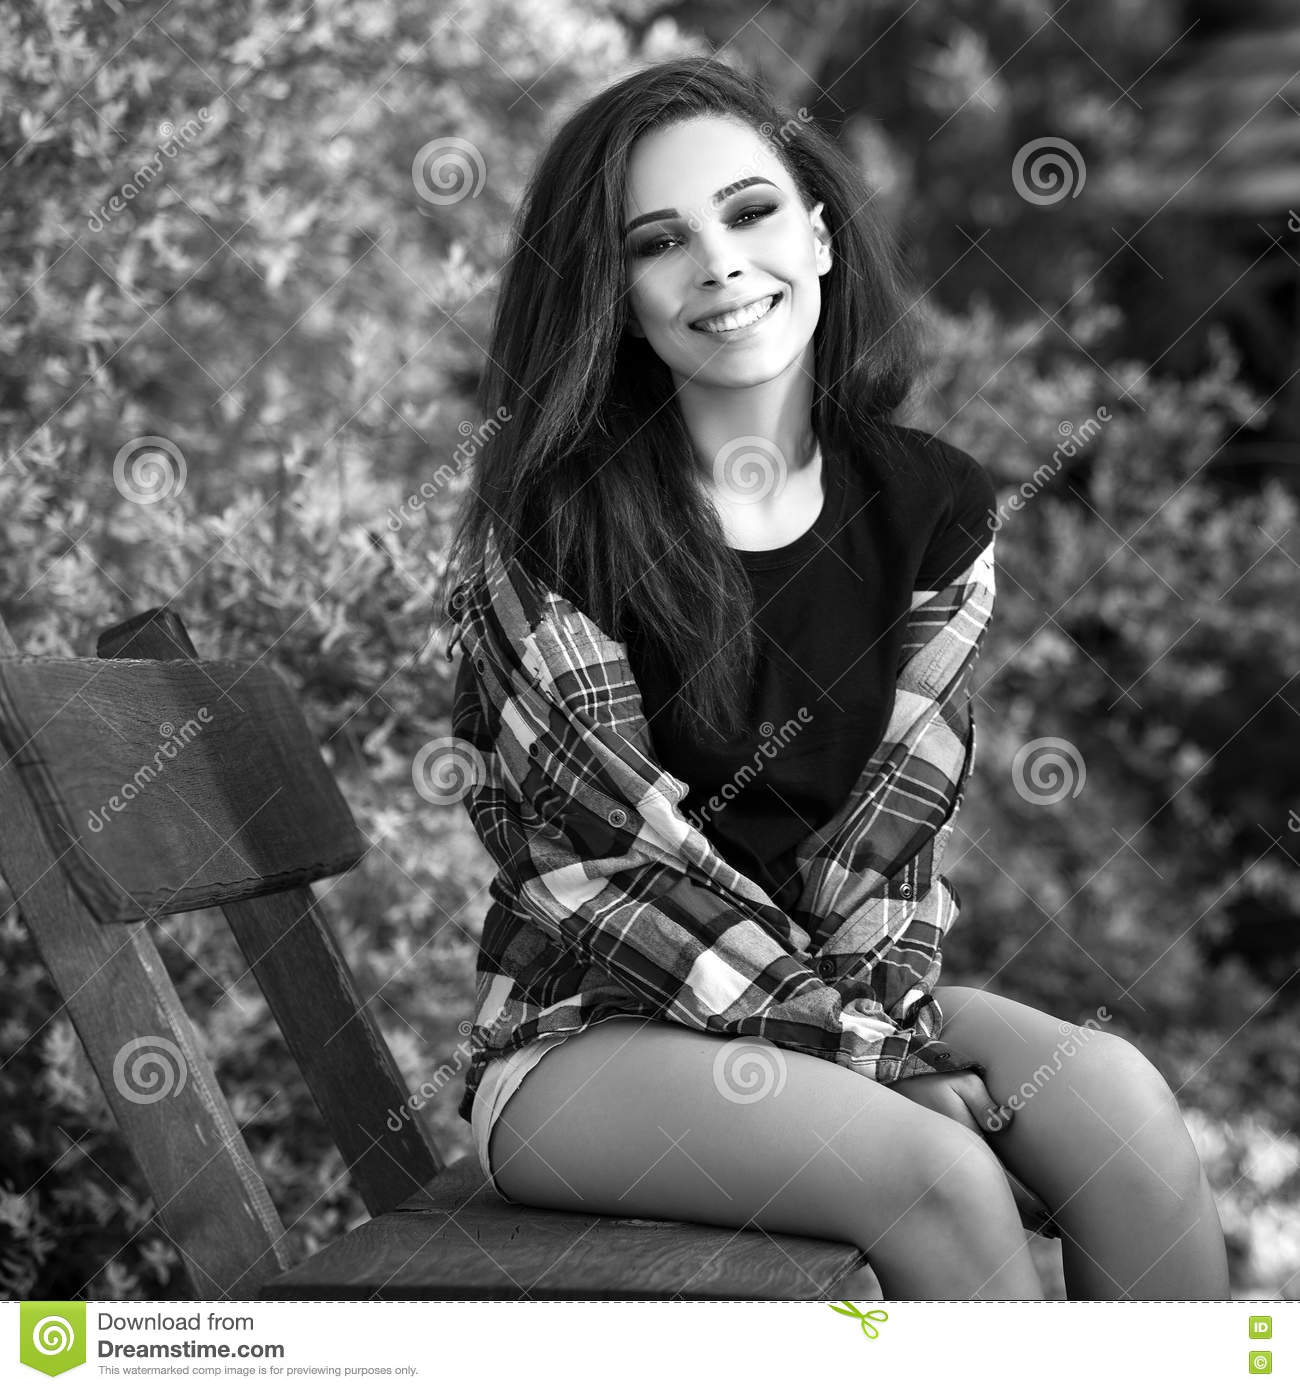 Black white outdoor portrait of siting beautiful young brunette